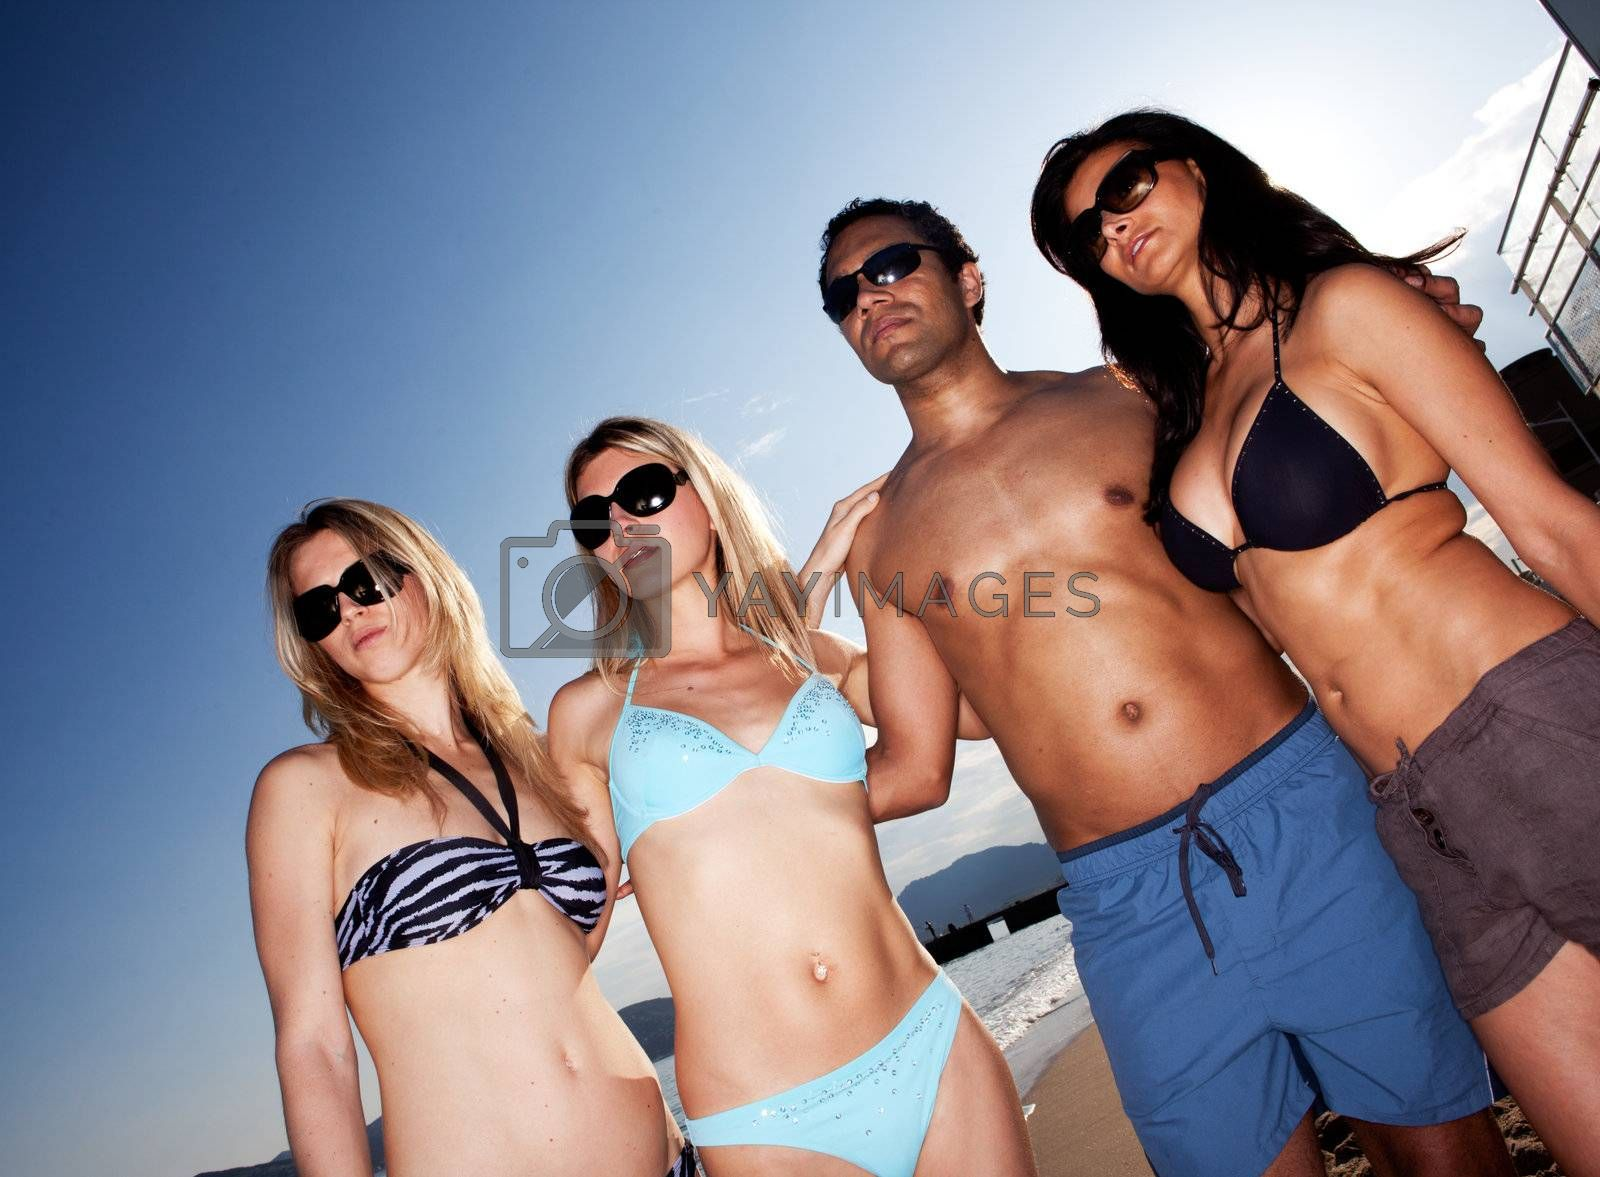 A group of models on the beach against a blue sky